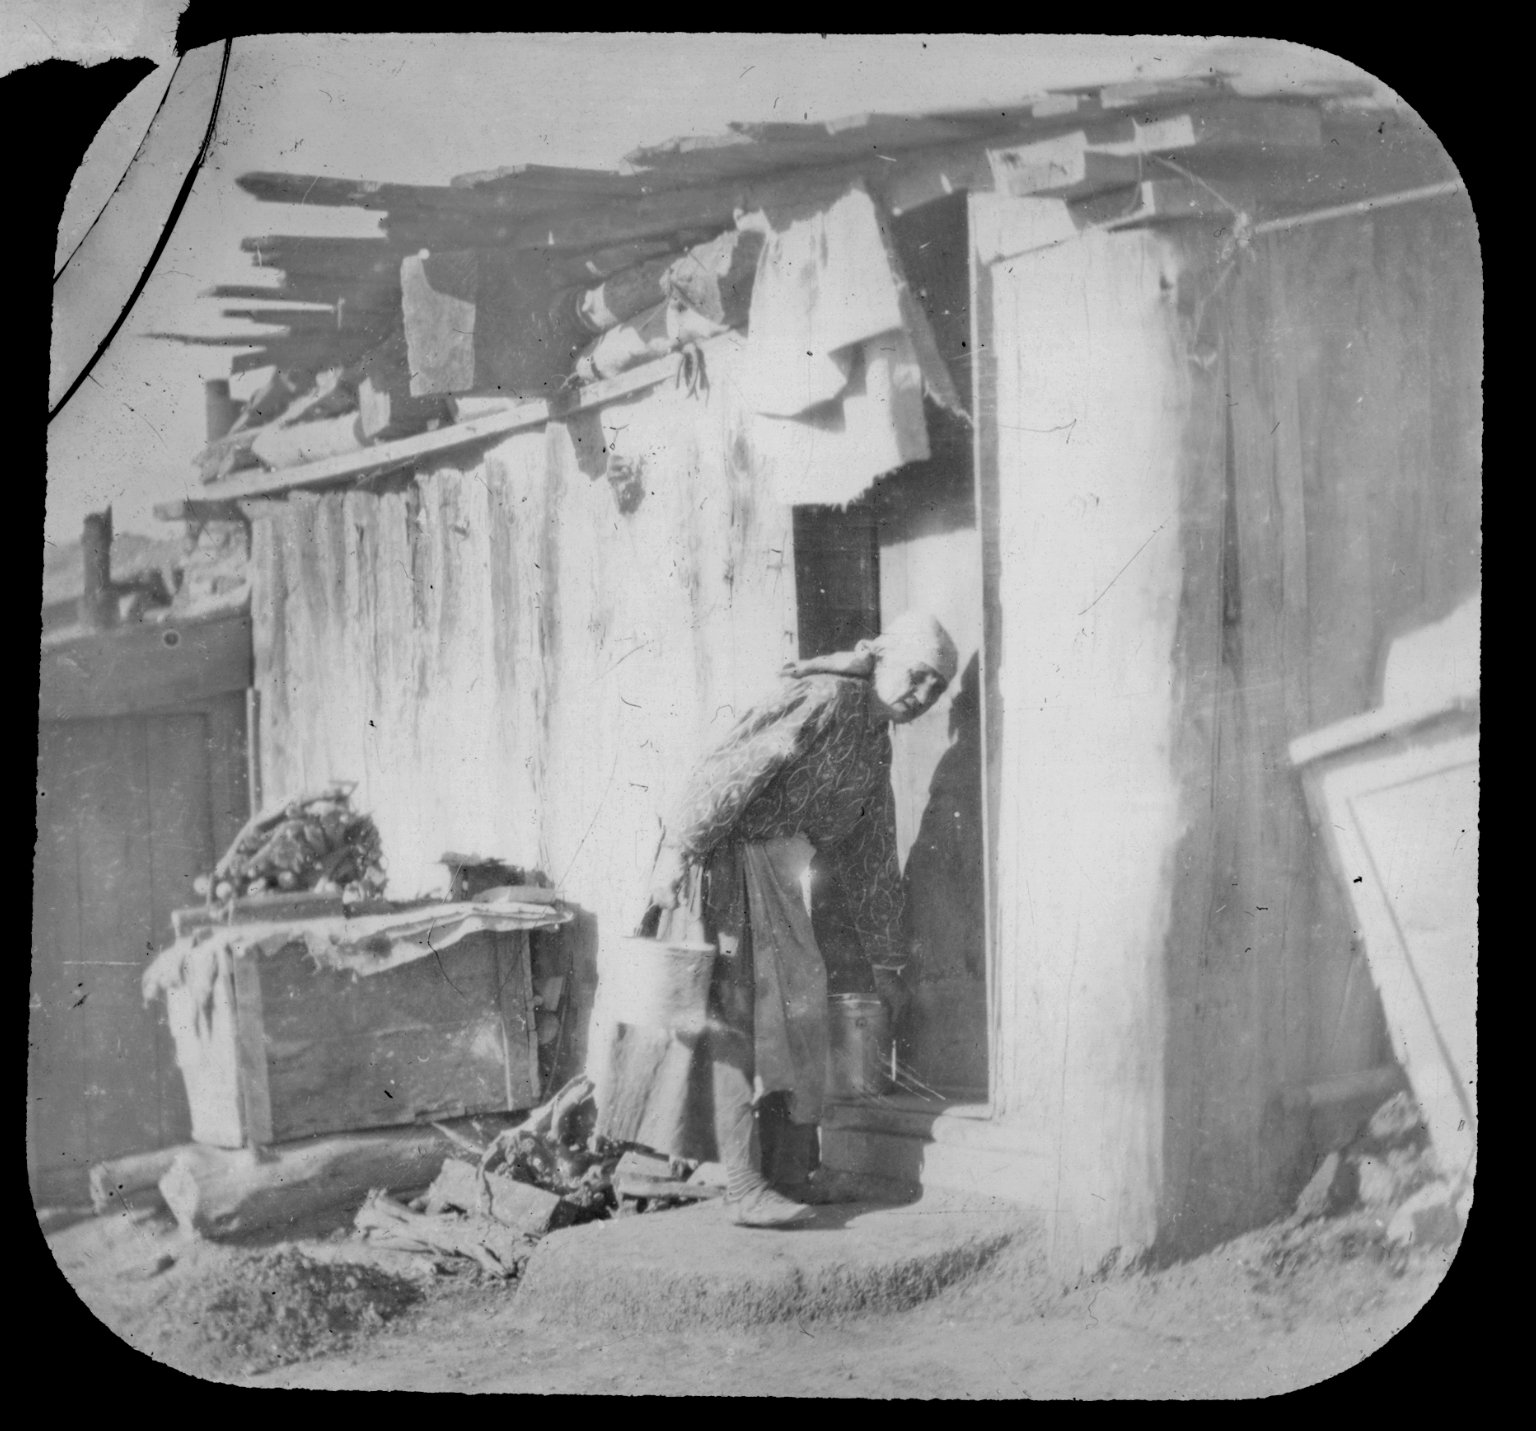 Native American woman with buckets